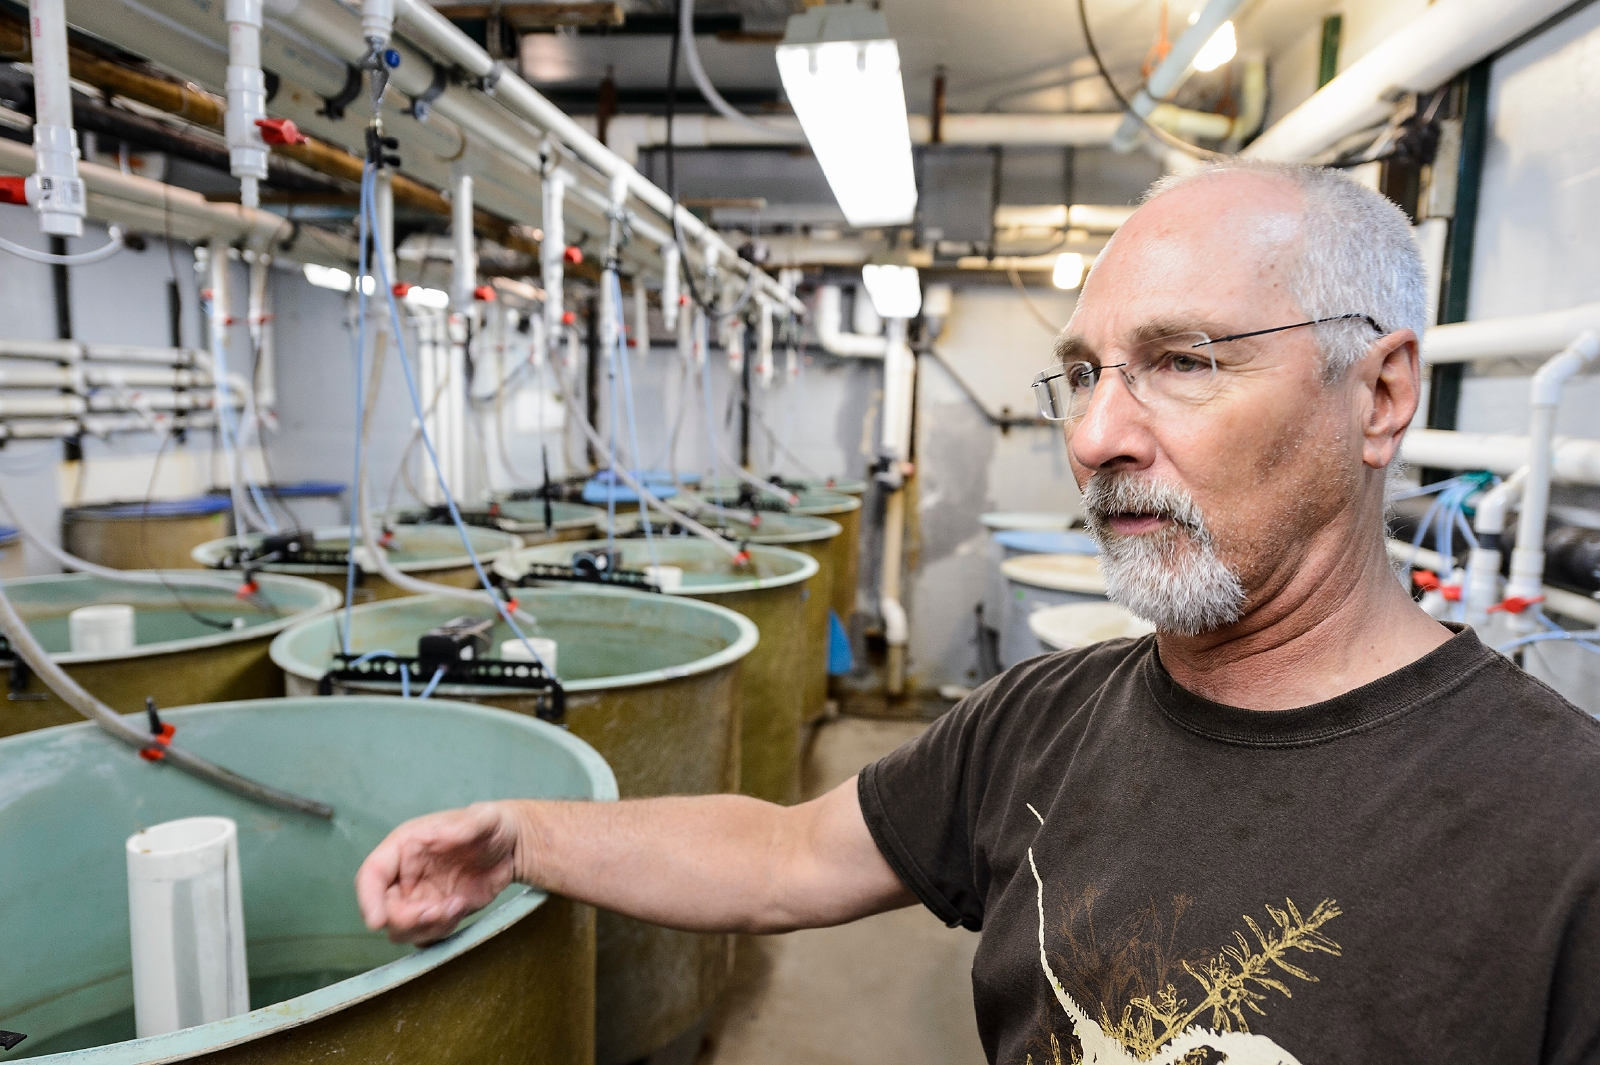 Terence Barry, senior scientist in animal science, shows one of many tanks of fish being studied at the Water Science and Engineering Laboratory at the University of Wisconsin–Madison on June 7, 2017. Barry is a university expert in aquaculture and the stress response in fish. (Photo by Jeff Miller / UW–Madison)